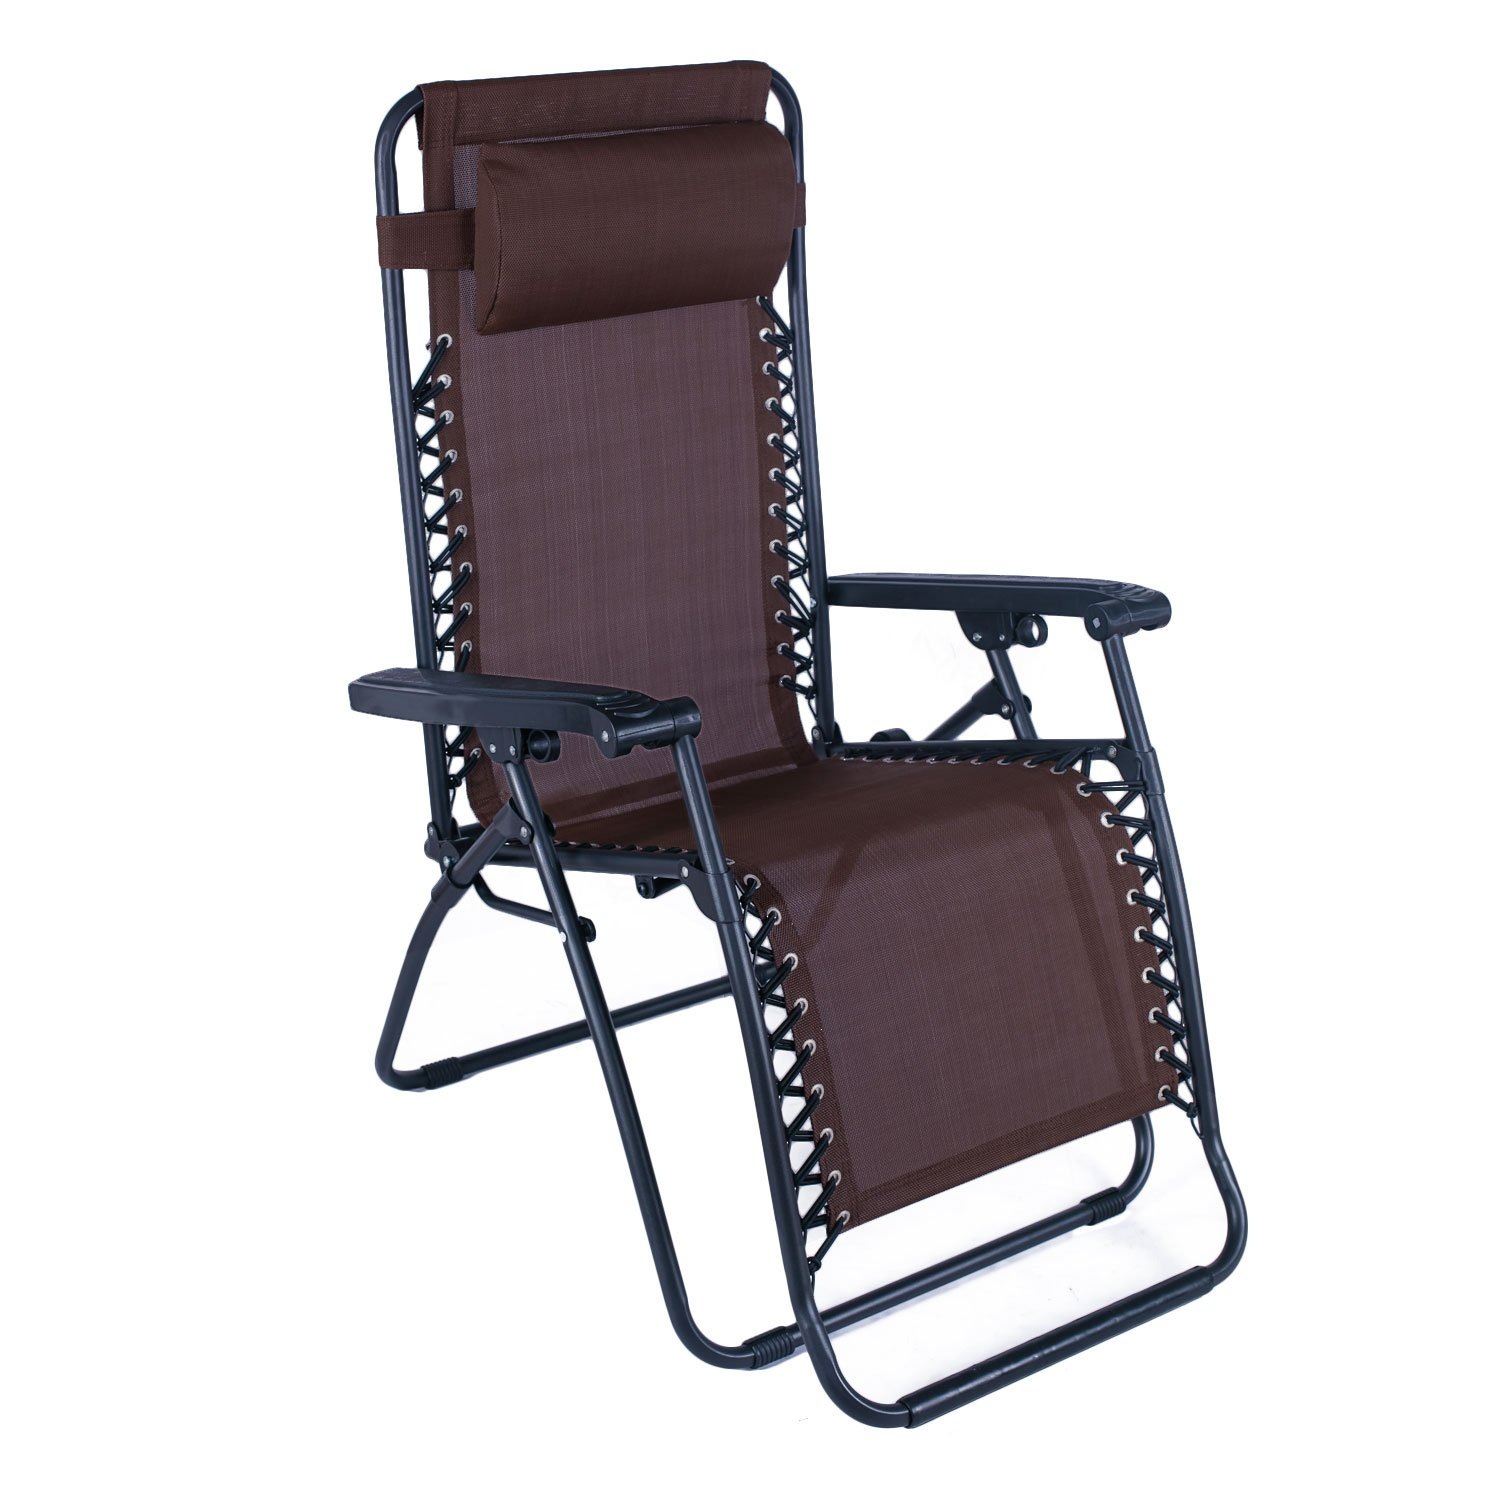 Asense Coffee Outdoor Folding and Reclining Chair with Adjustable Headrest, for Yard Beach.